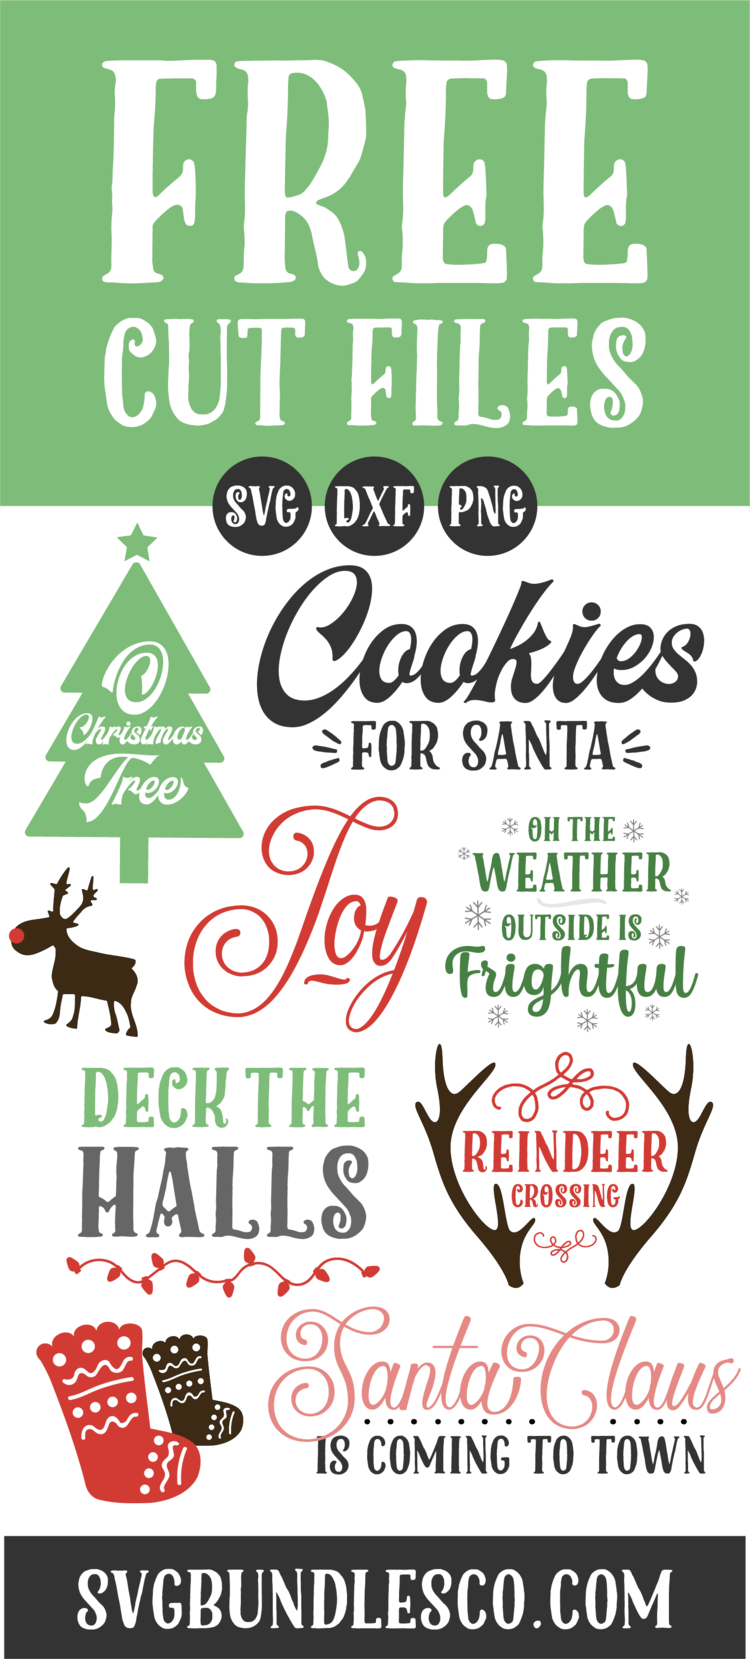 Download Pin on Cricut Expressions